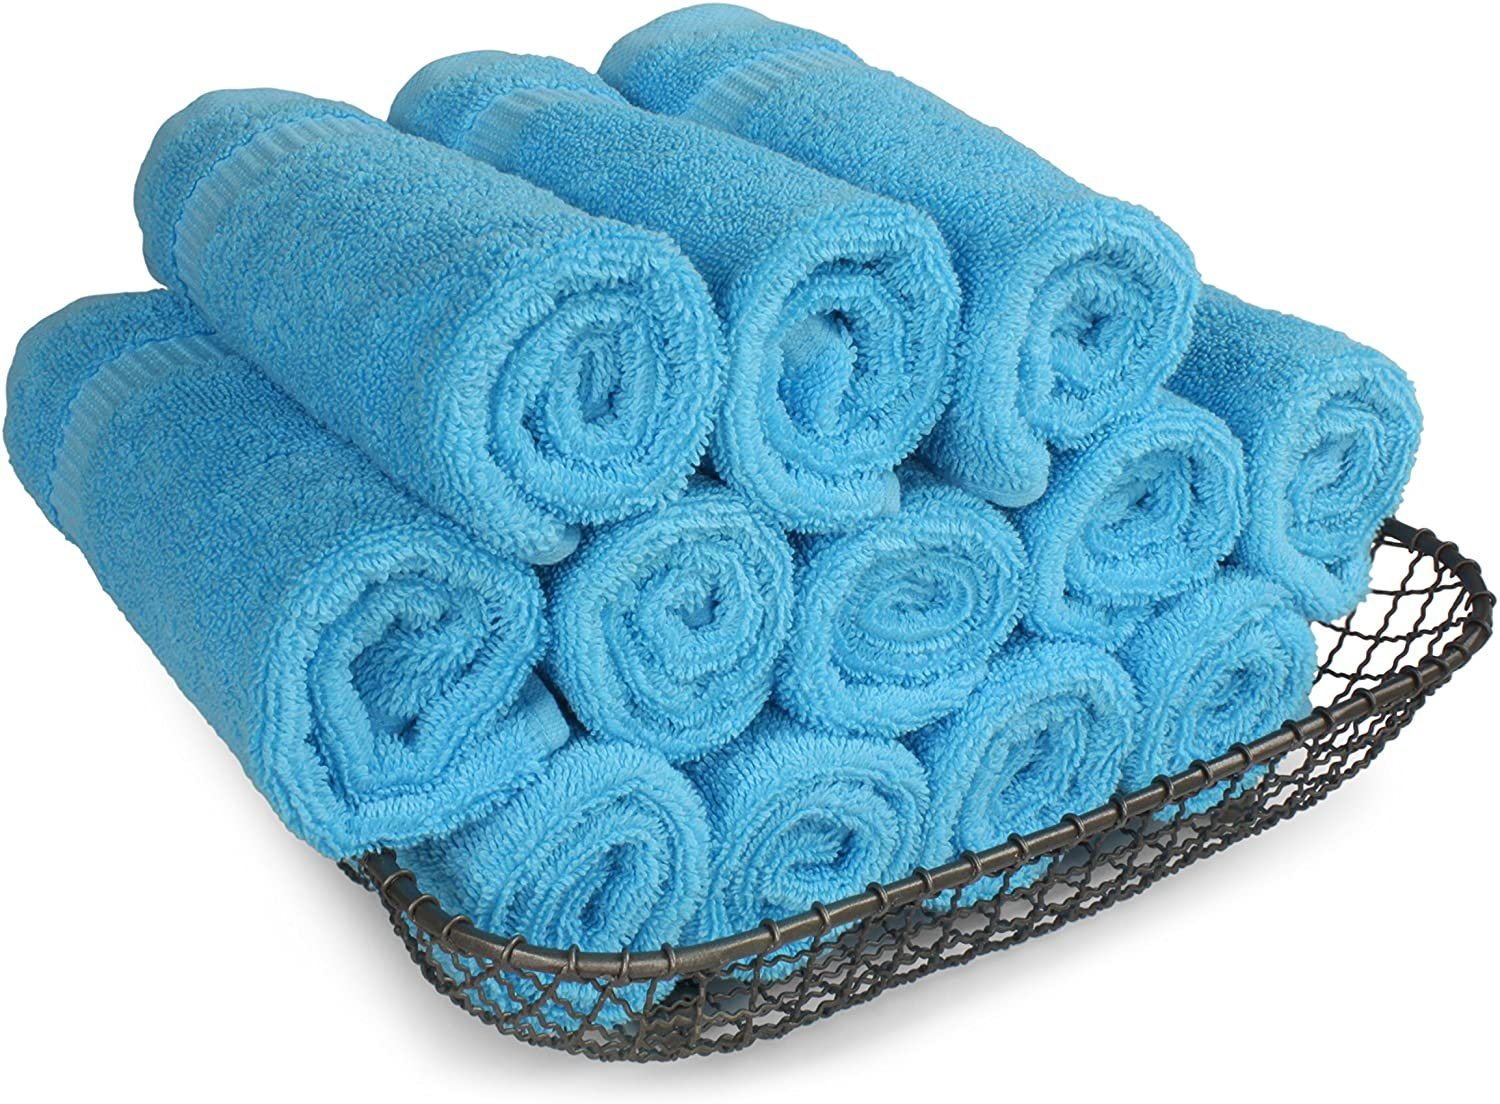 SALBAKOS Luxury Hotel & Spa Turkish Cotton 12-Piece Eco-Friendly Washcloth Set for Bath, 13 x 13 Inch, Navy